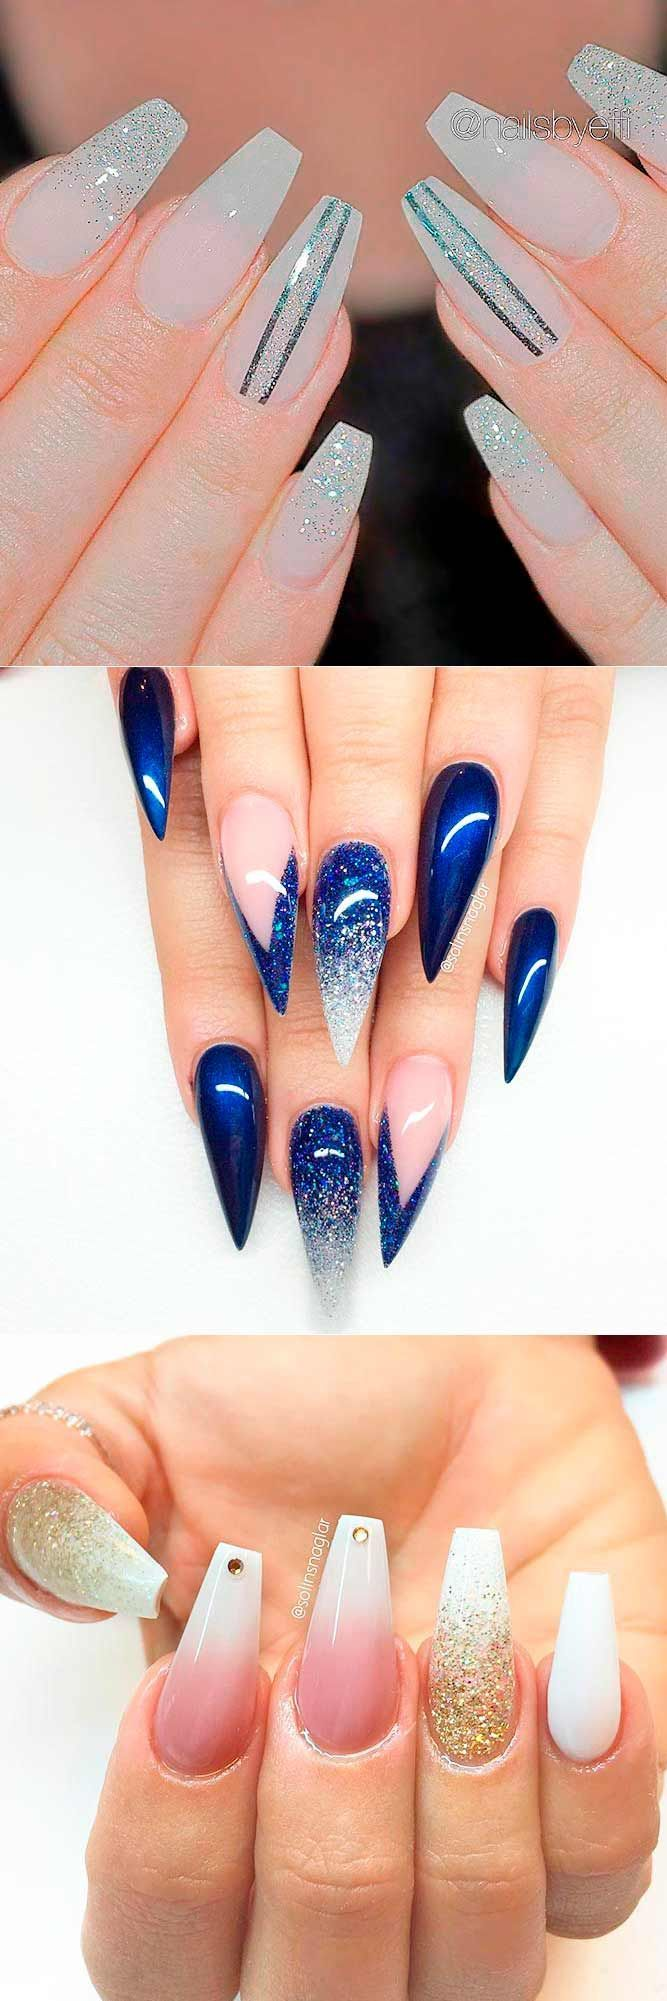 best 25+ homecoming nails ideas on pinterest   coffin acrylic